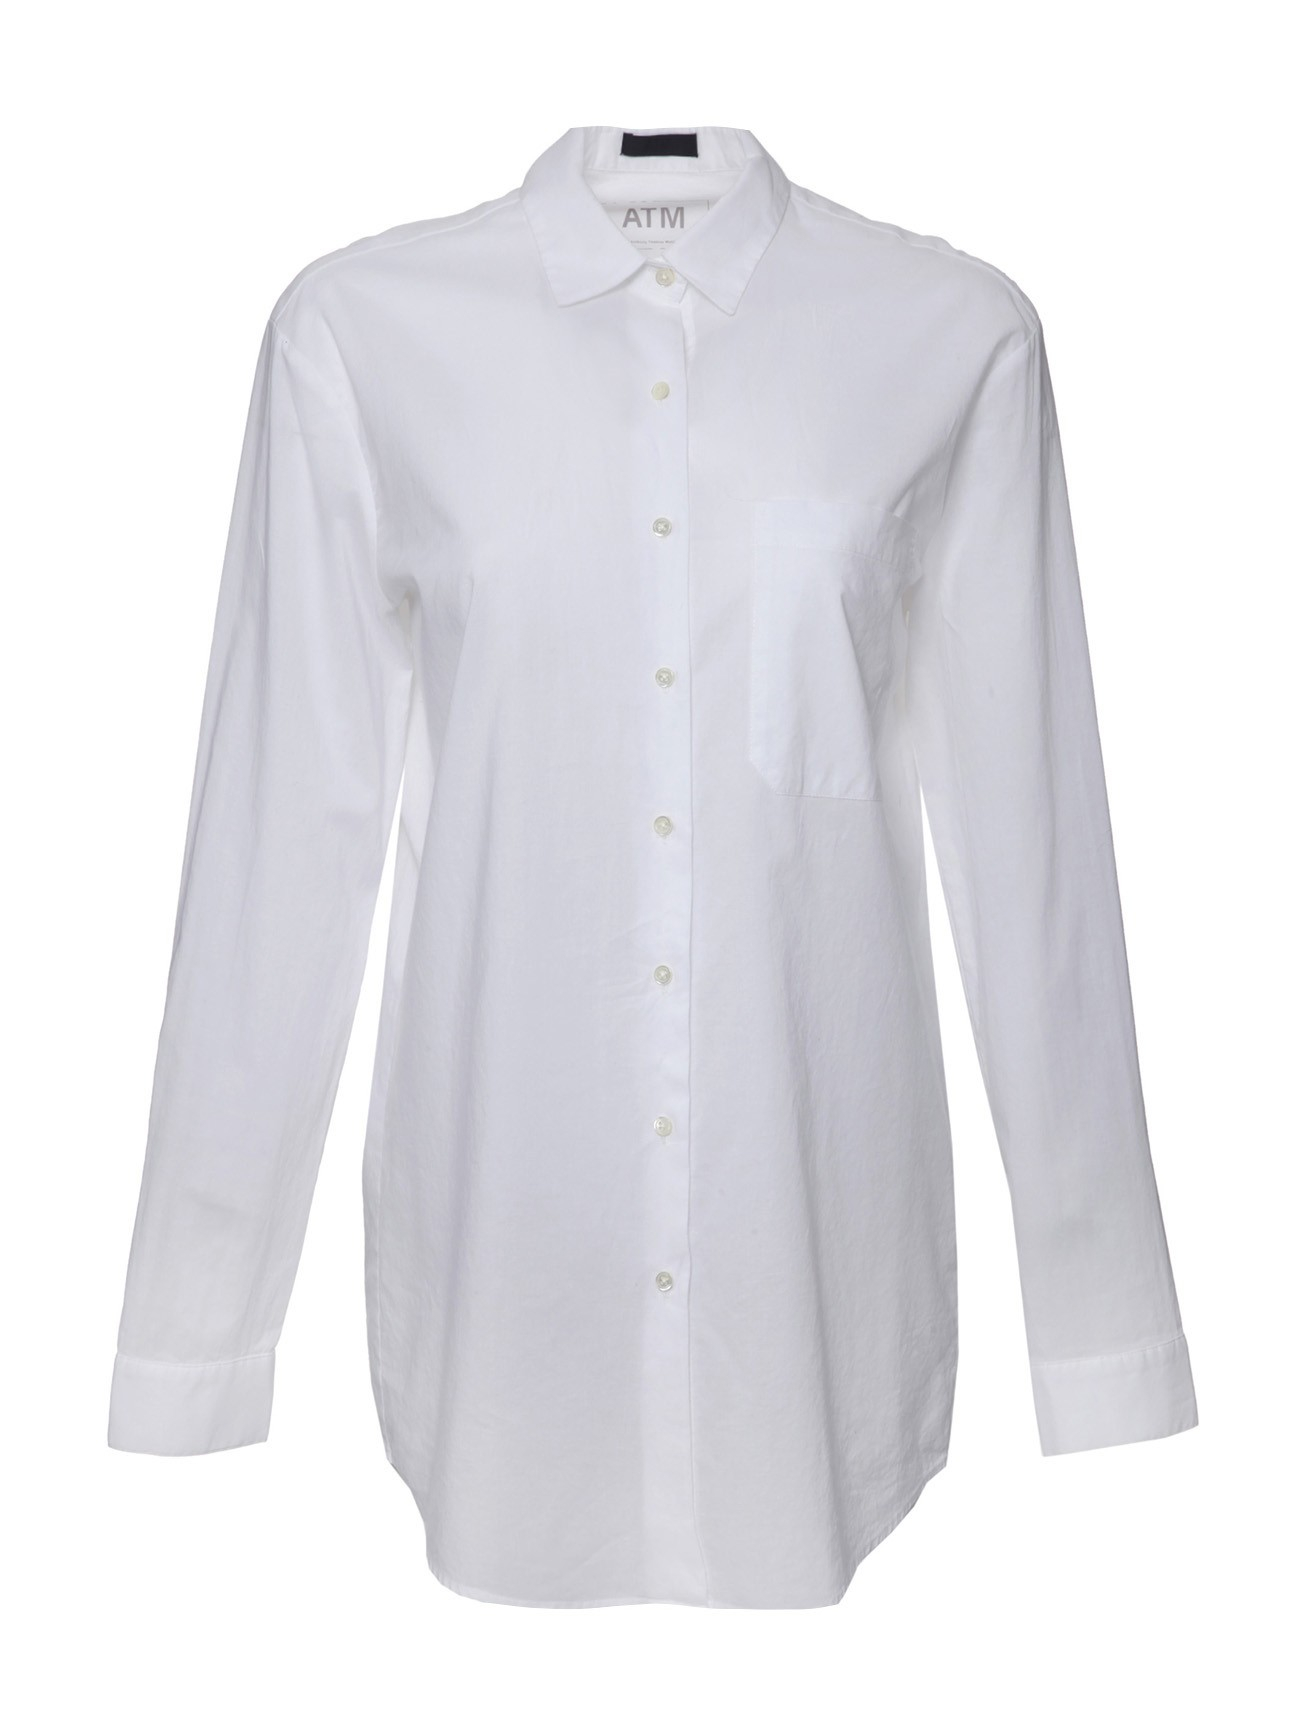 atm long sleeve cotton button down shirt in white lyst